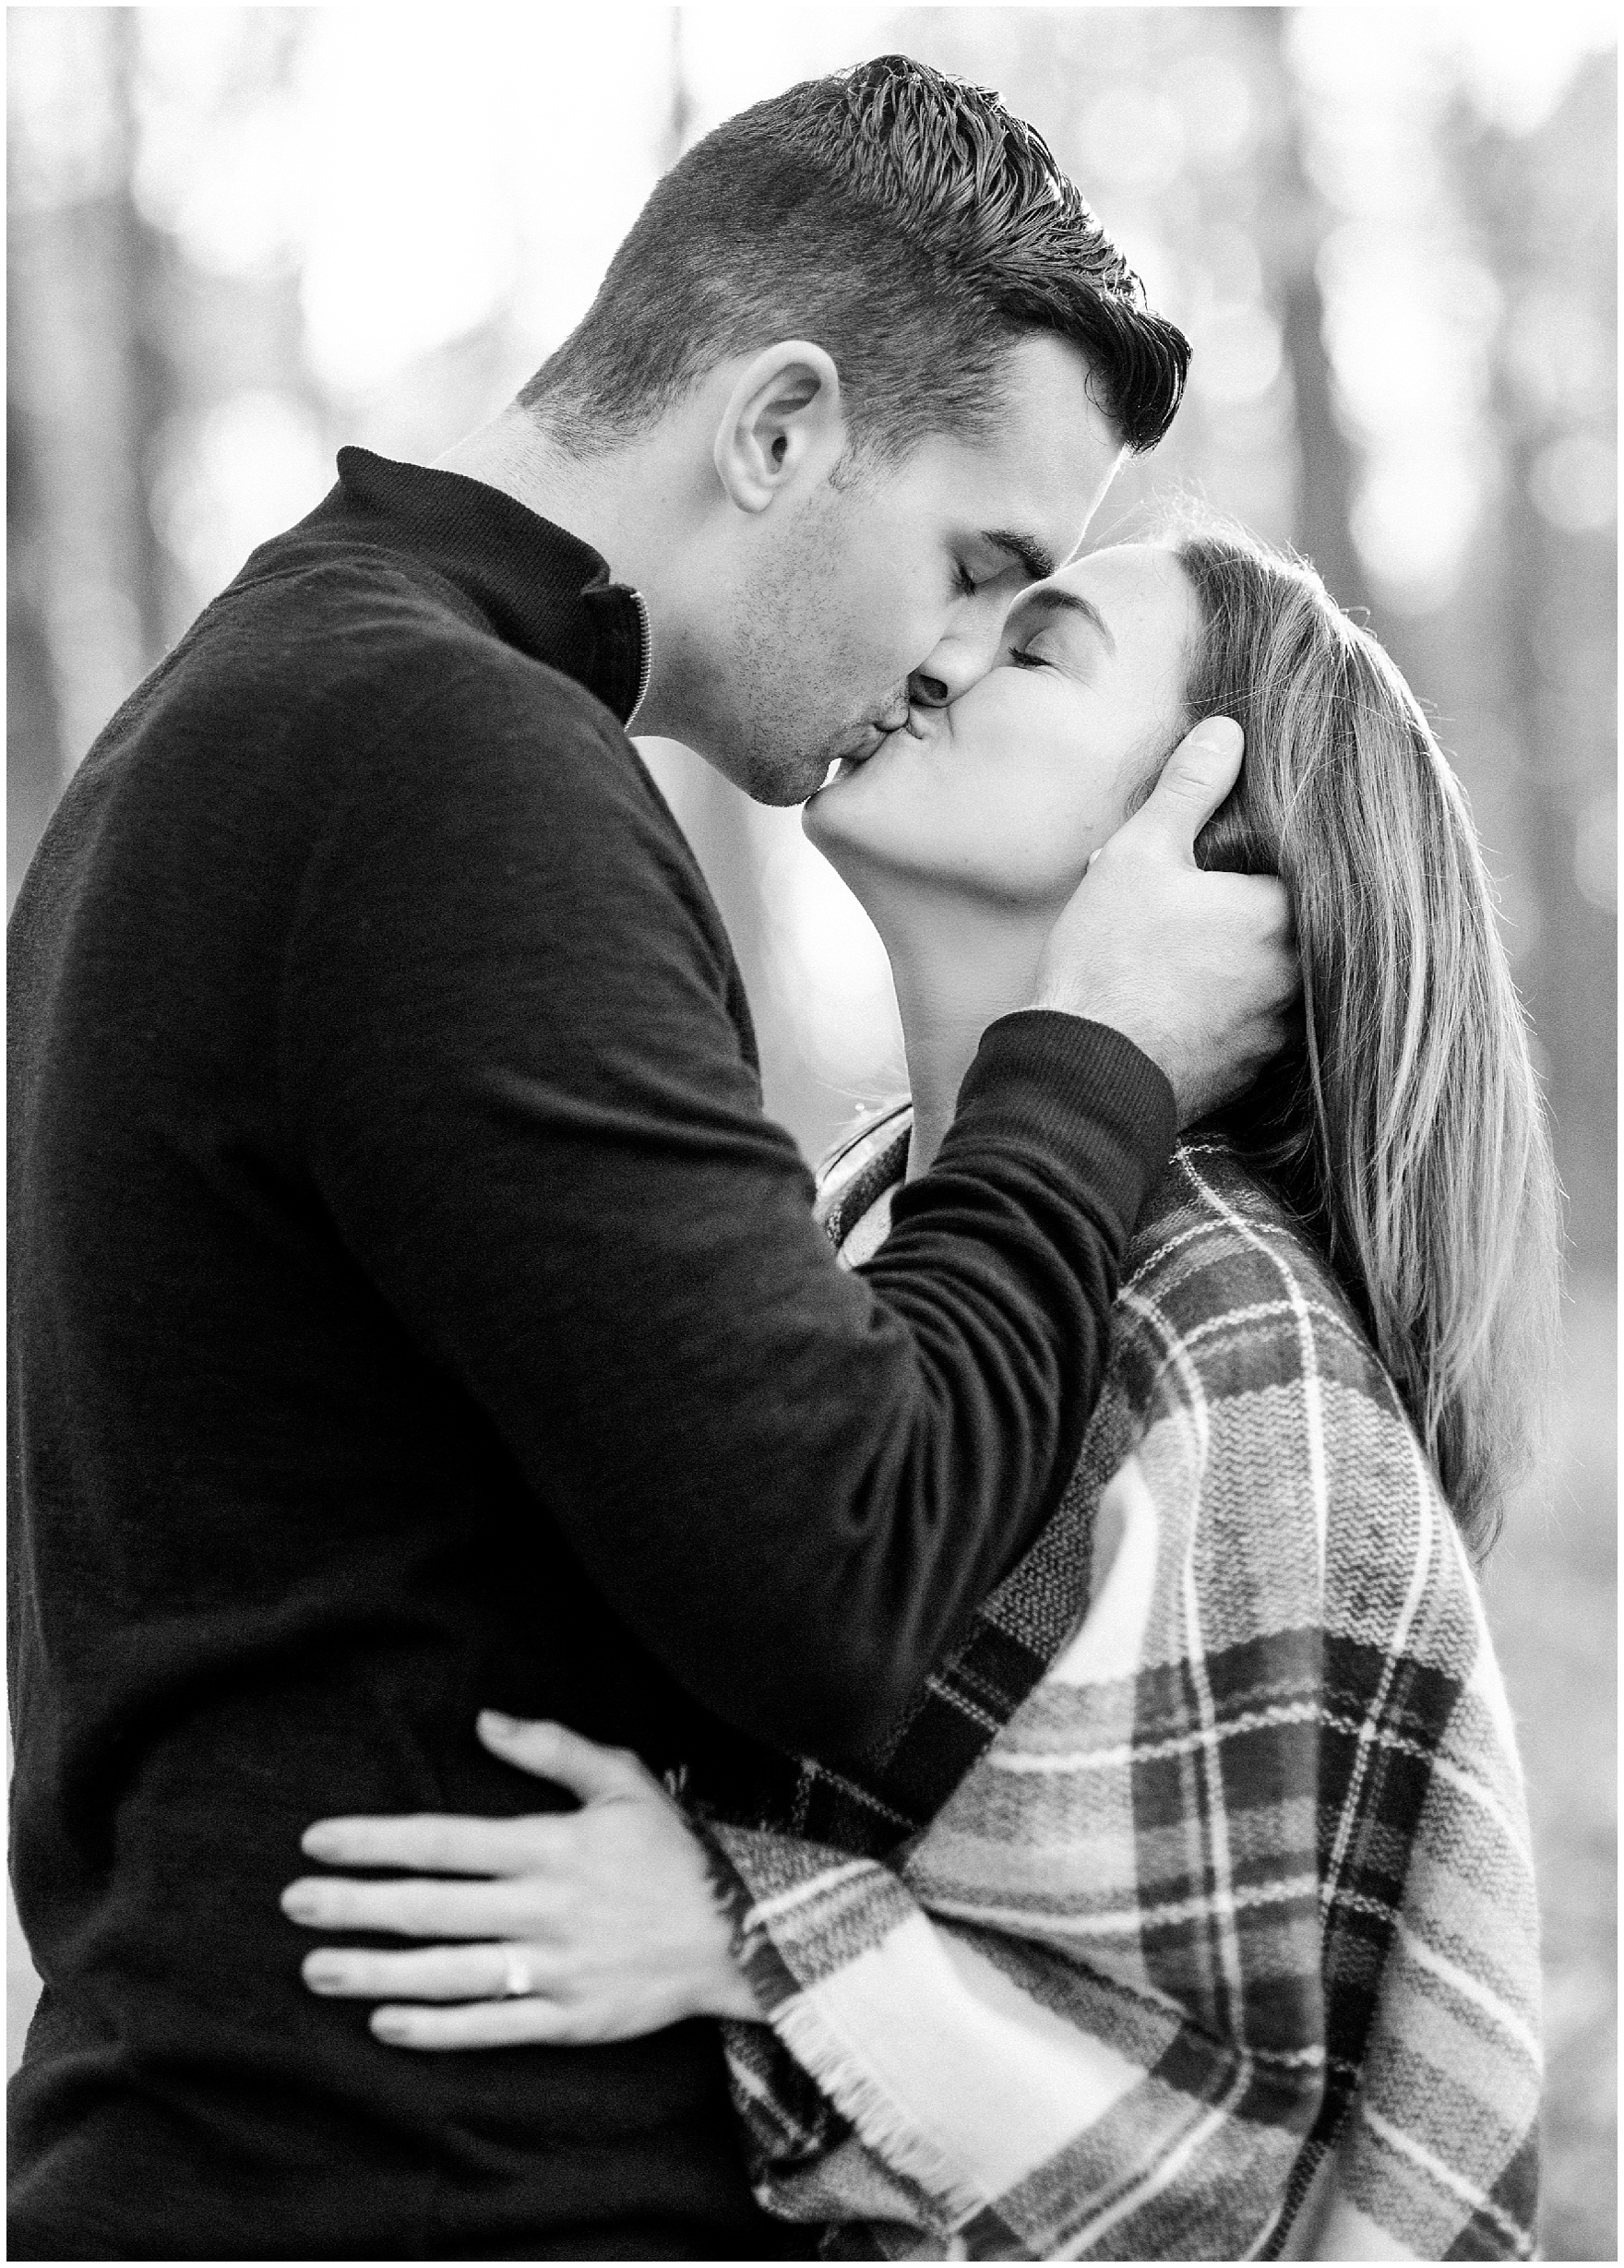 Black and white image of couple kissing during a fall woods engagement session.